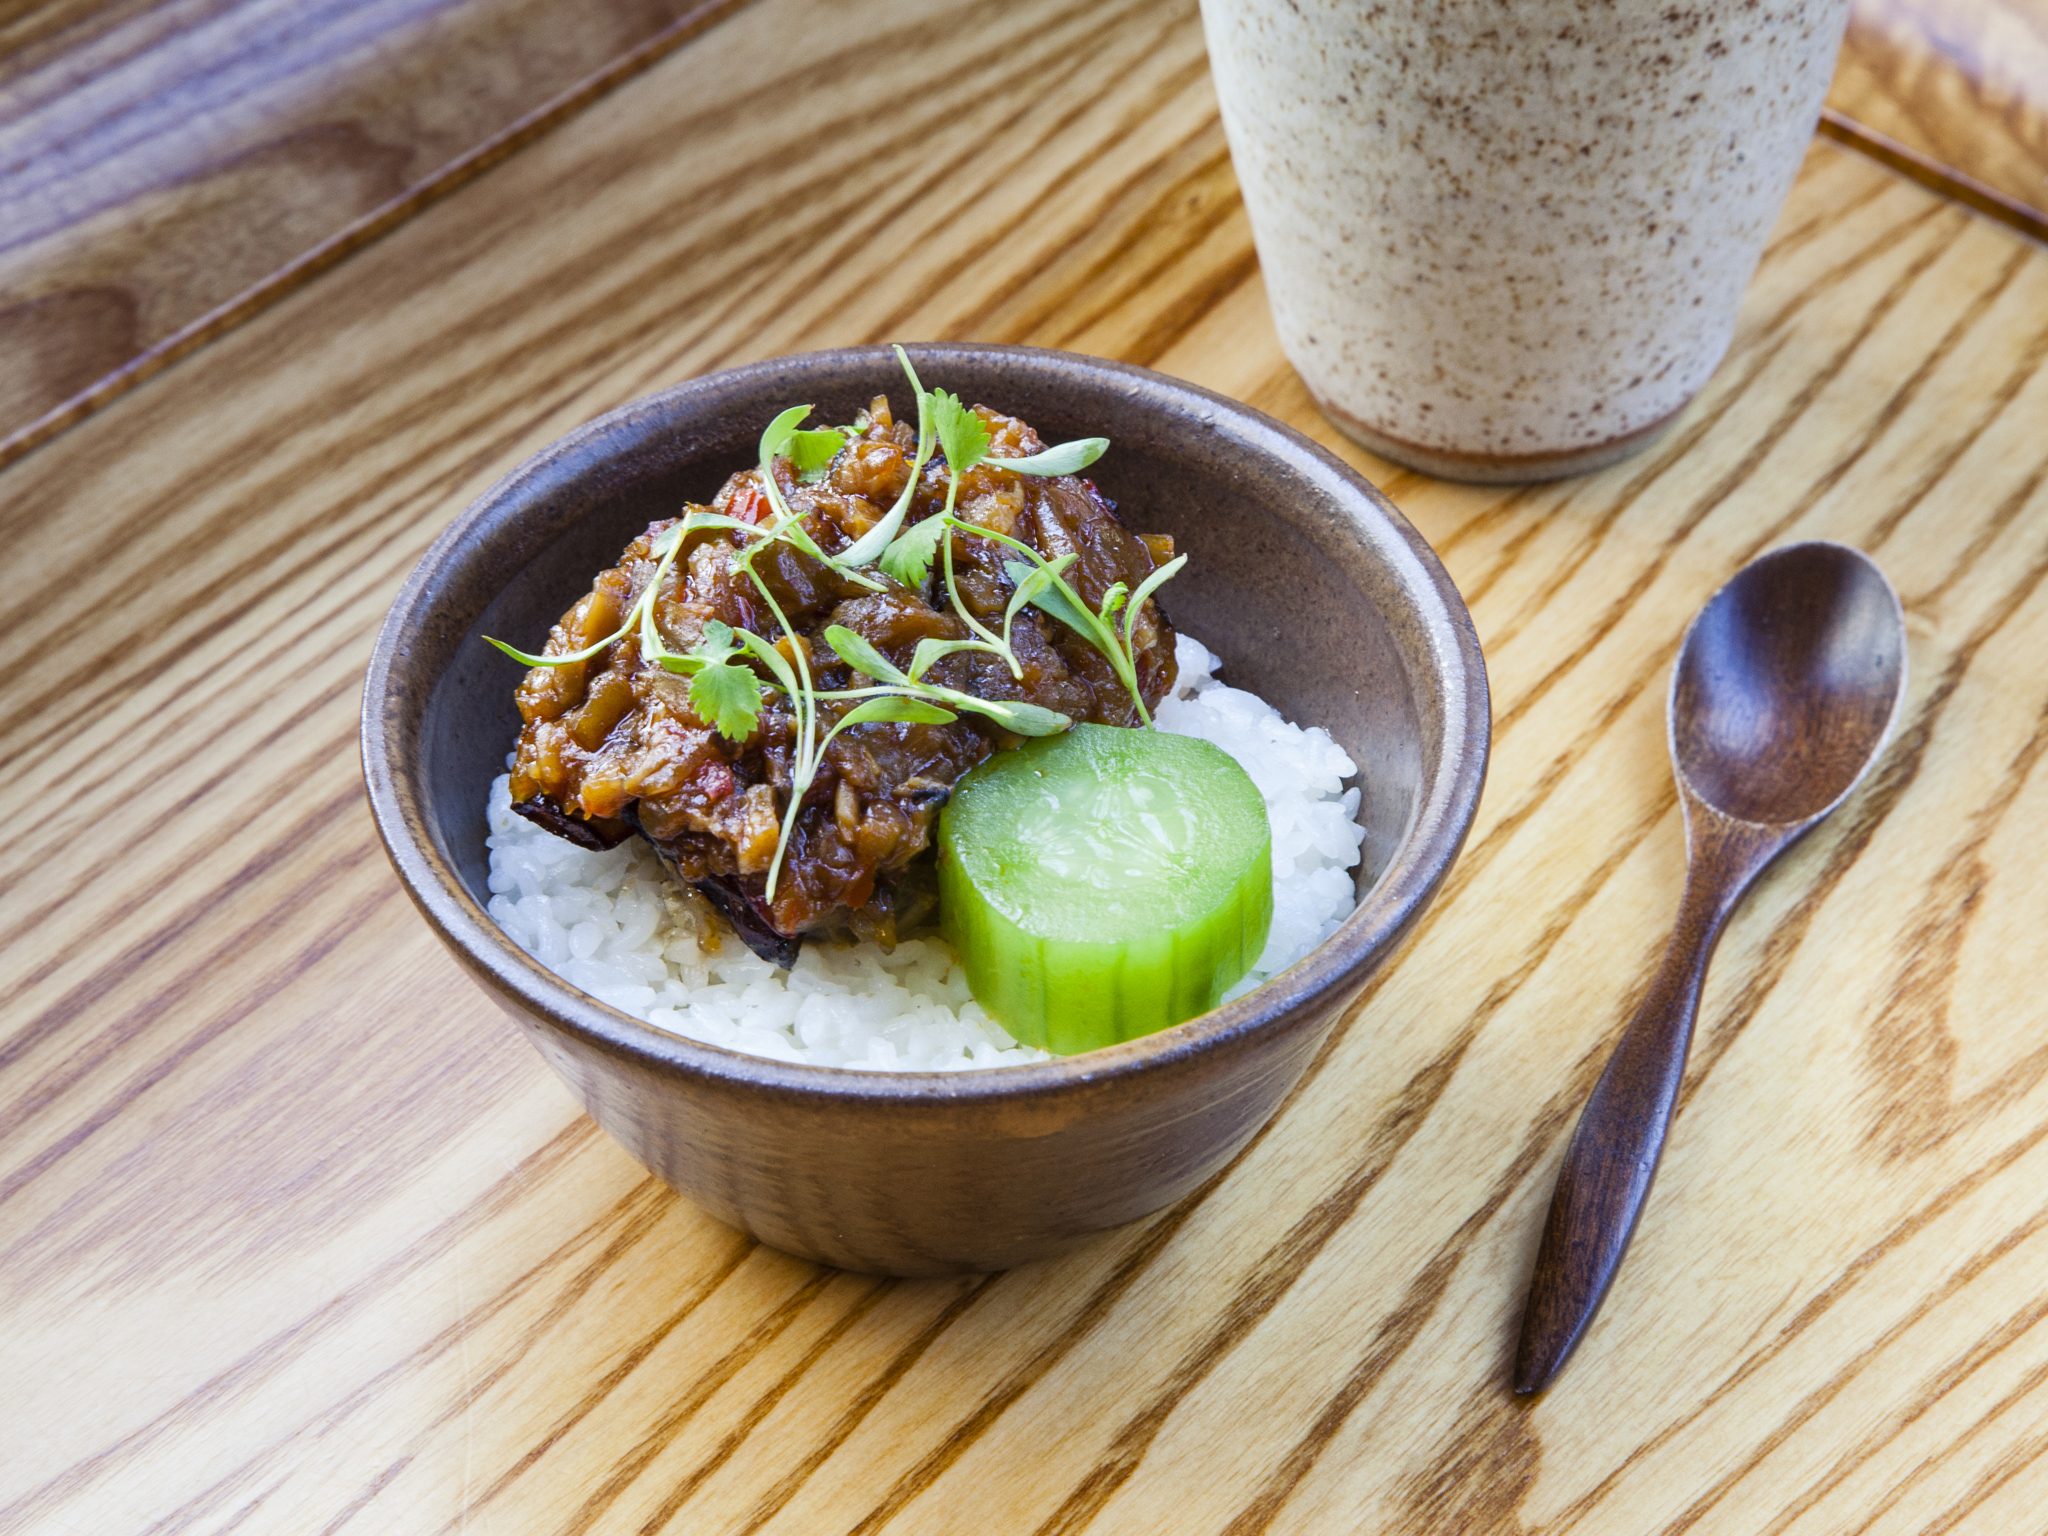 Best vegan dishes in london, bao fitzrovia